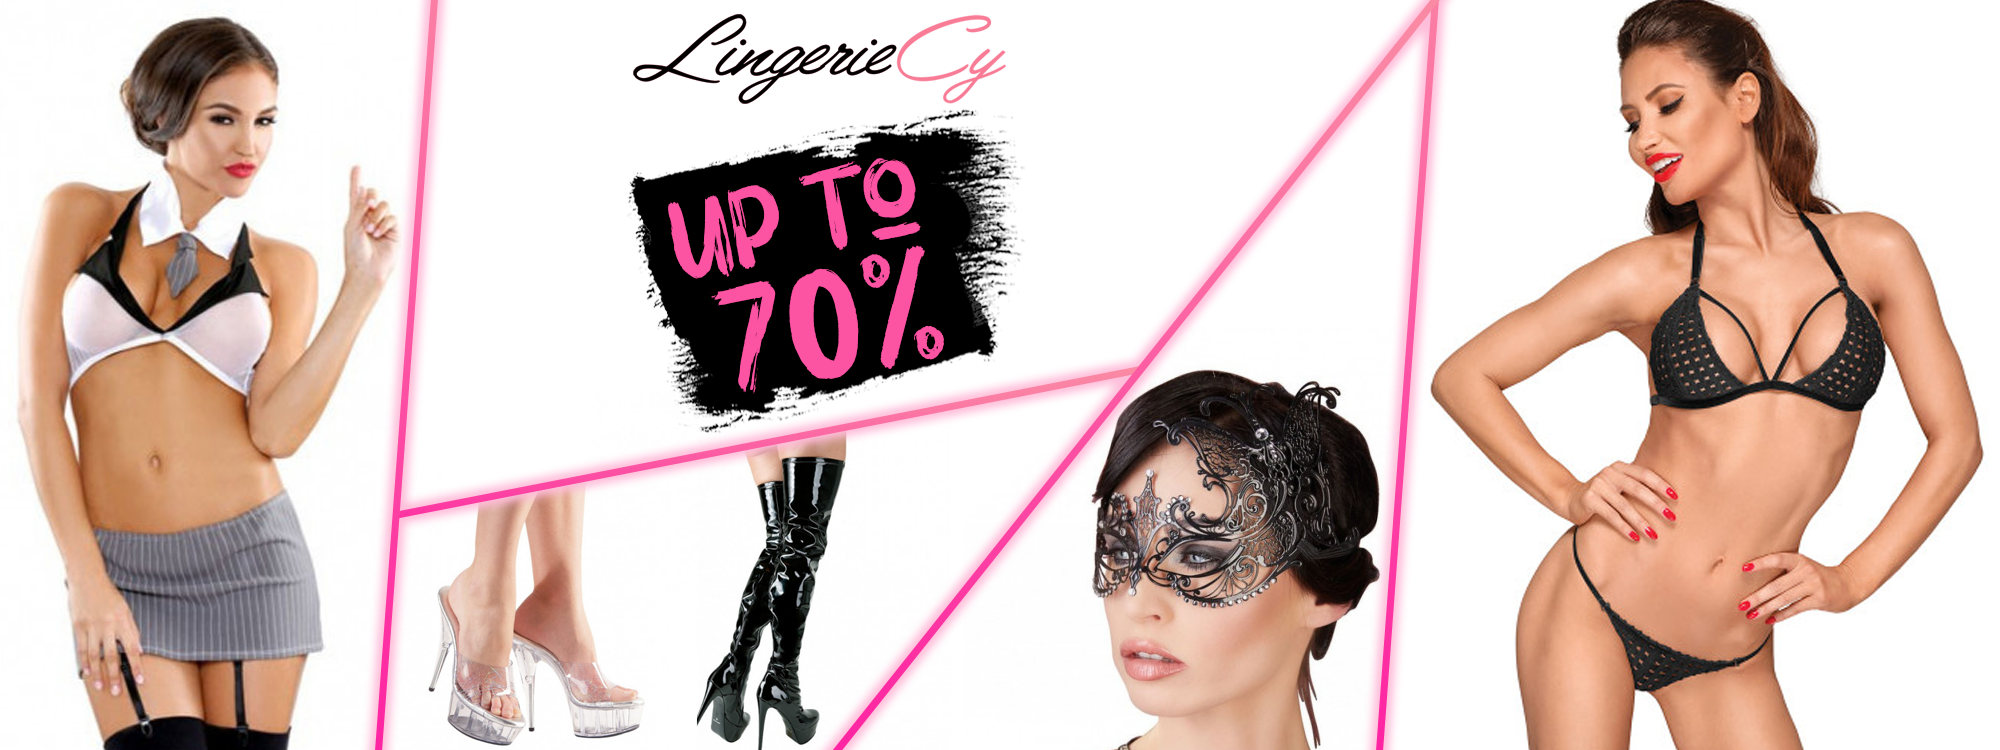 Summer Sale Up to 70%